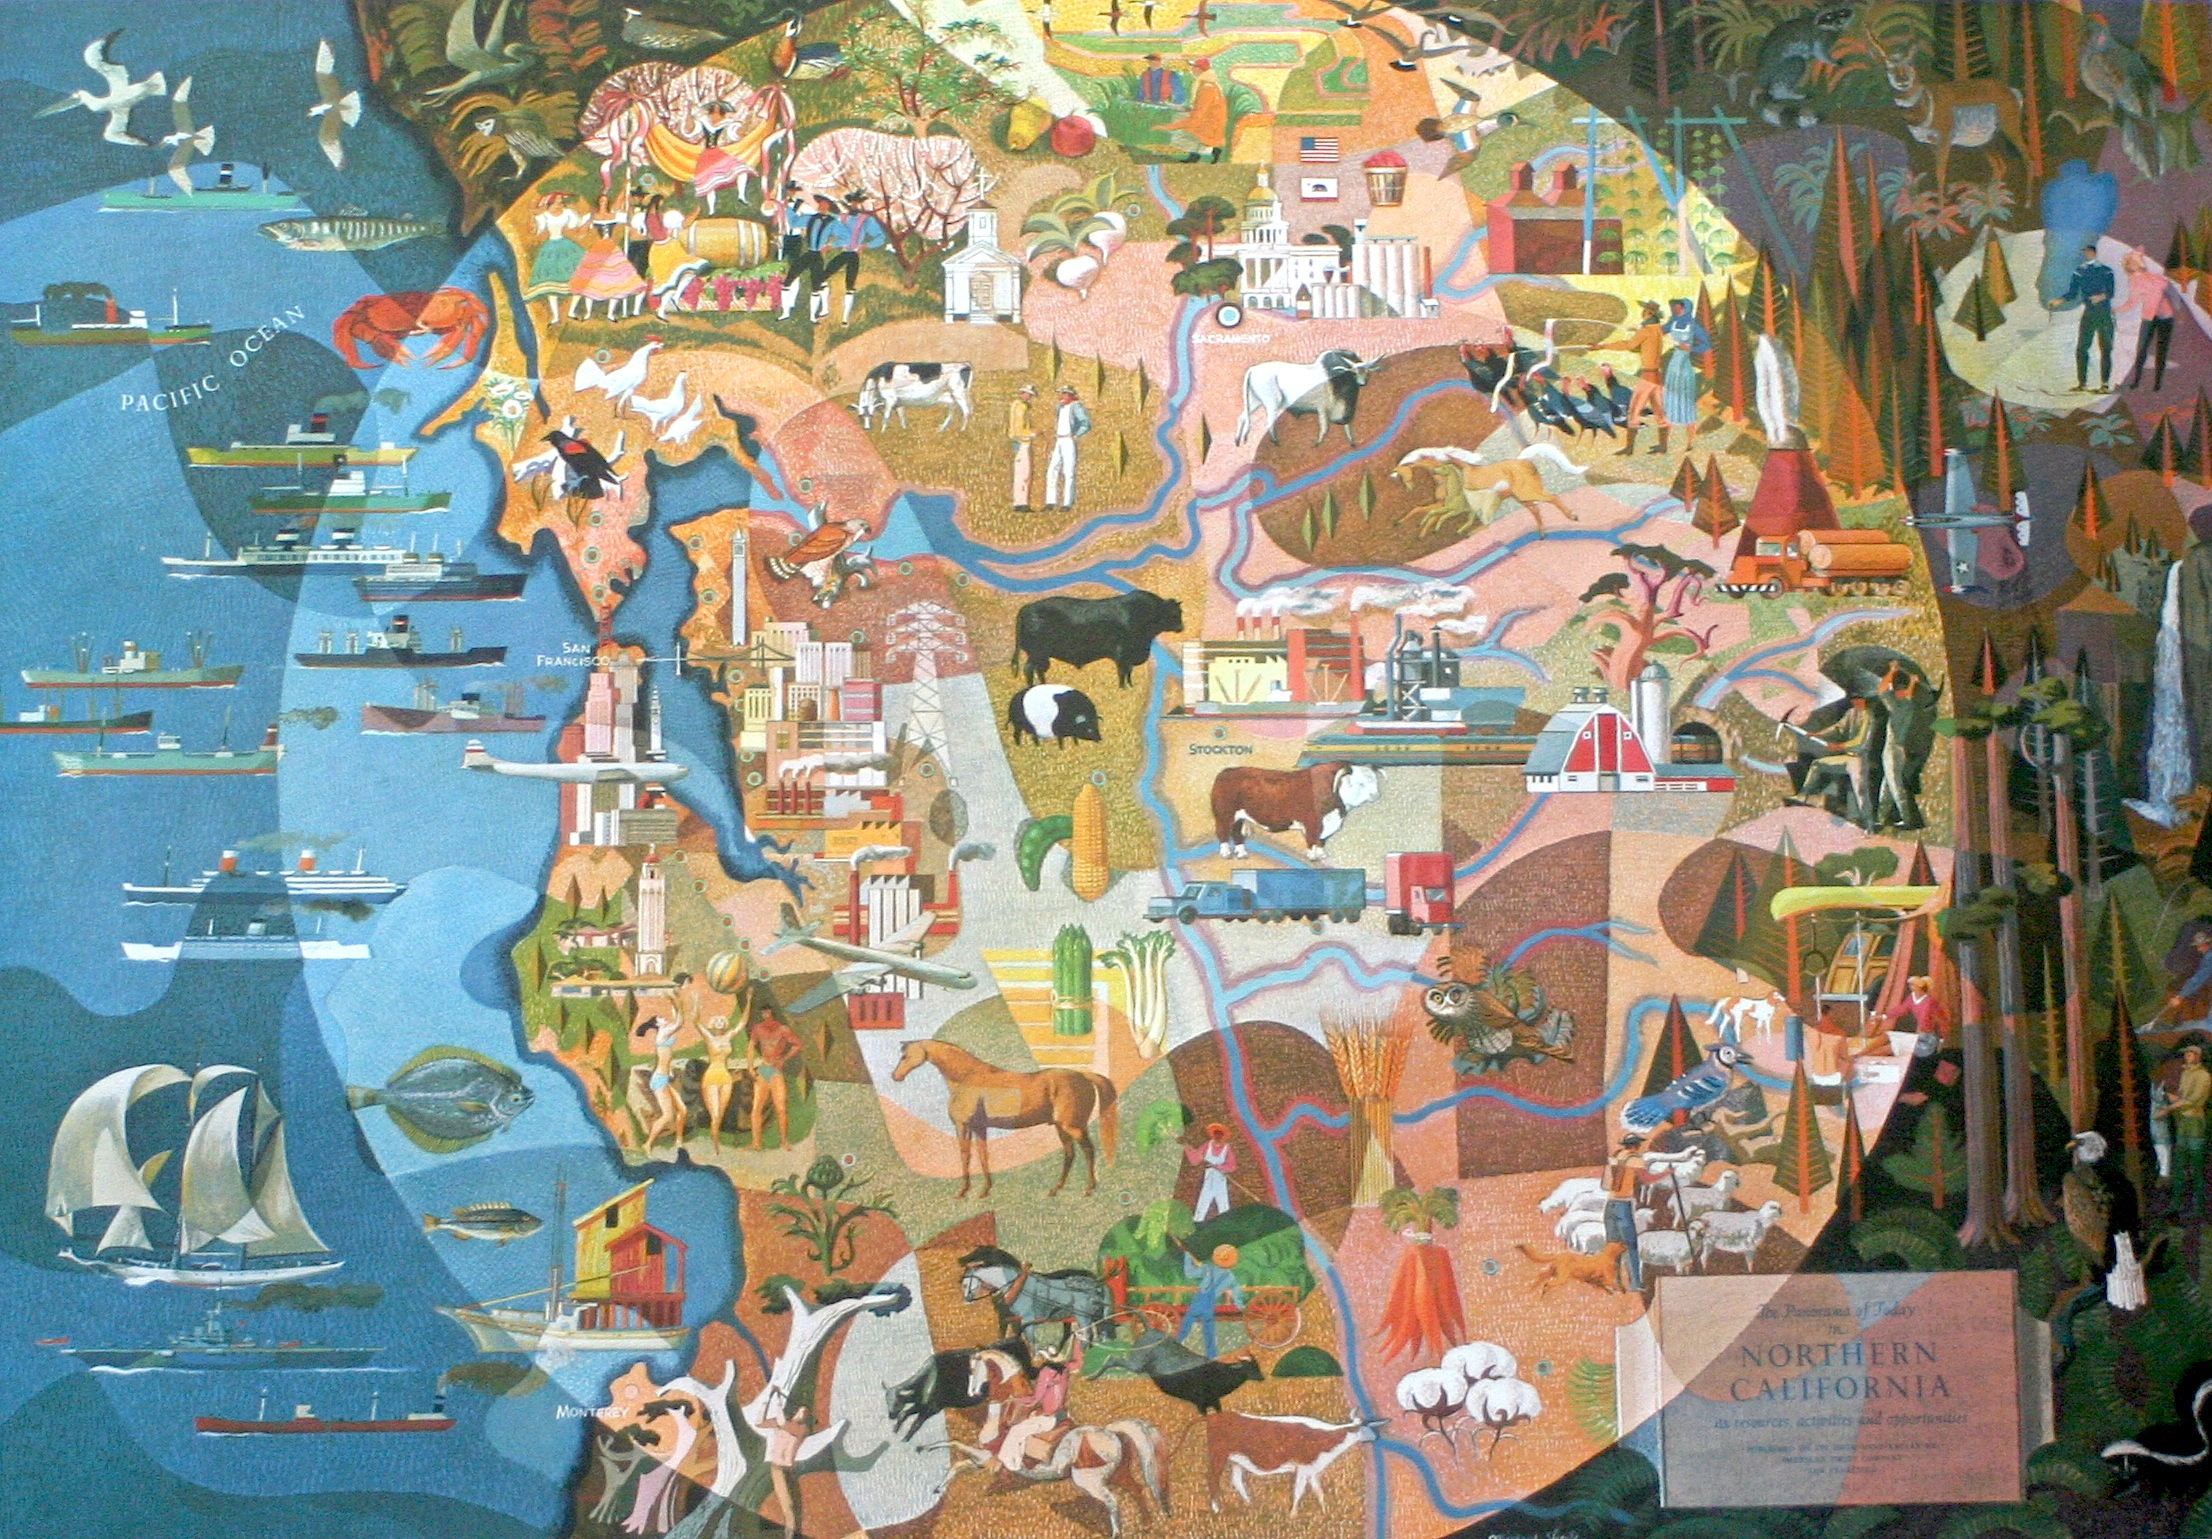 Millard Sheets, The Panorama of Today in Northern California, for American Trust Company of San Francisco, 1954